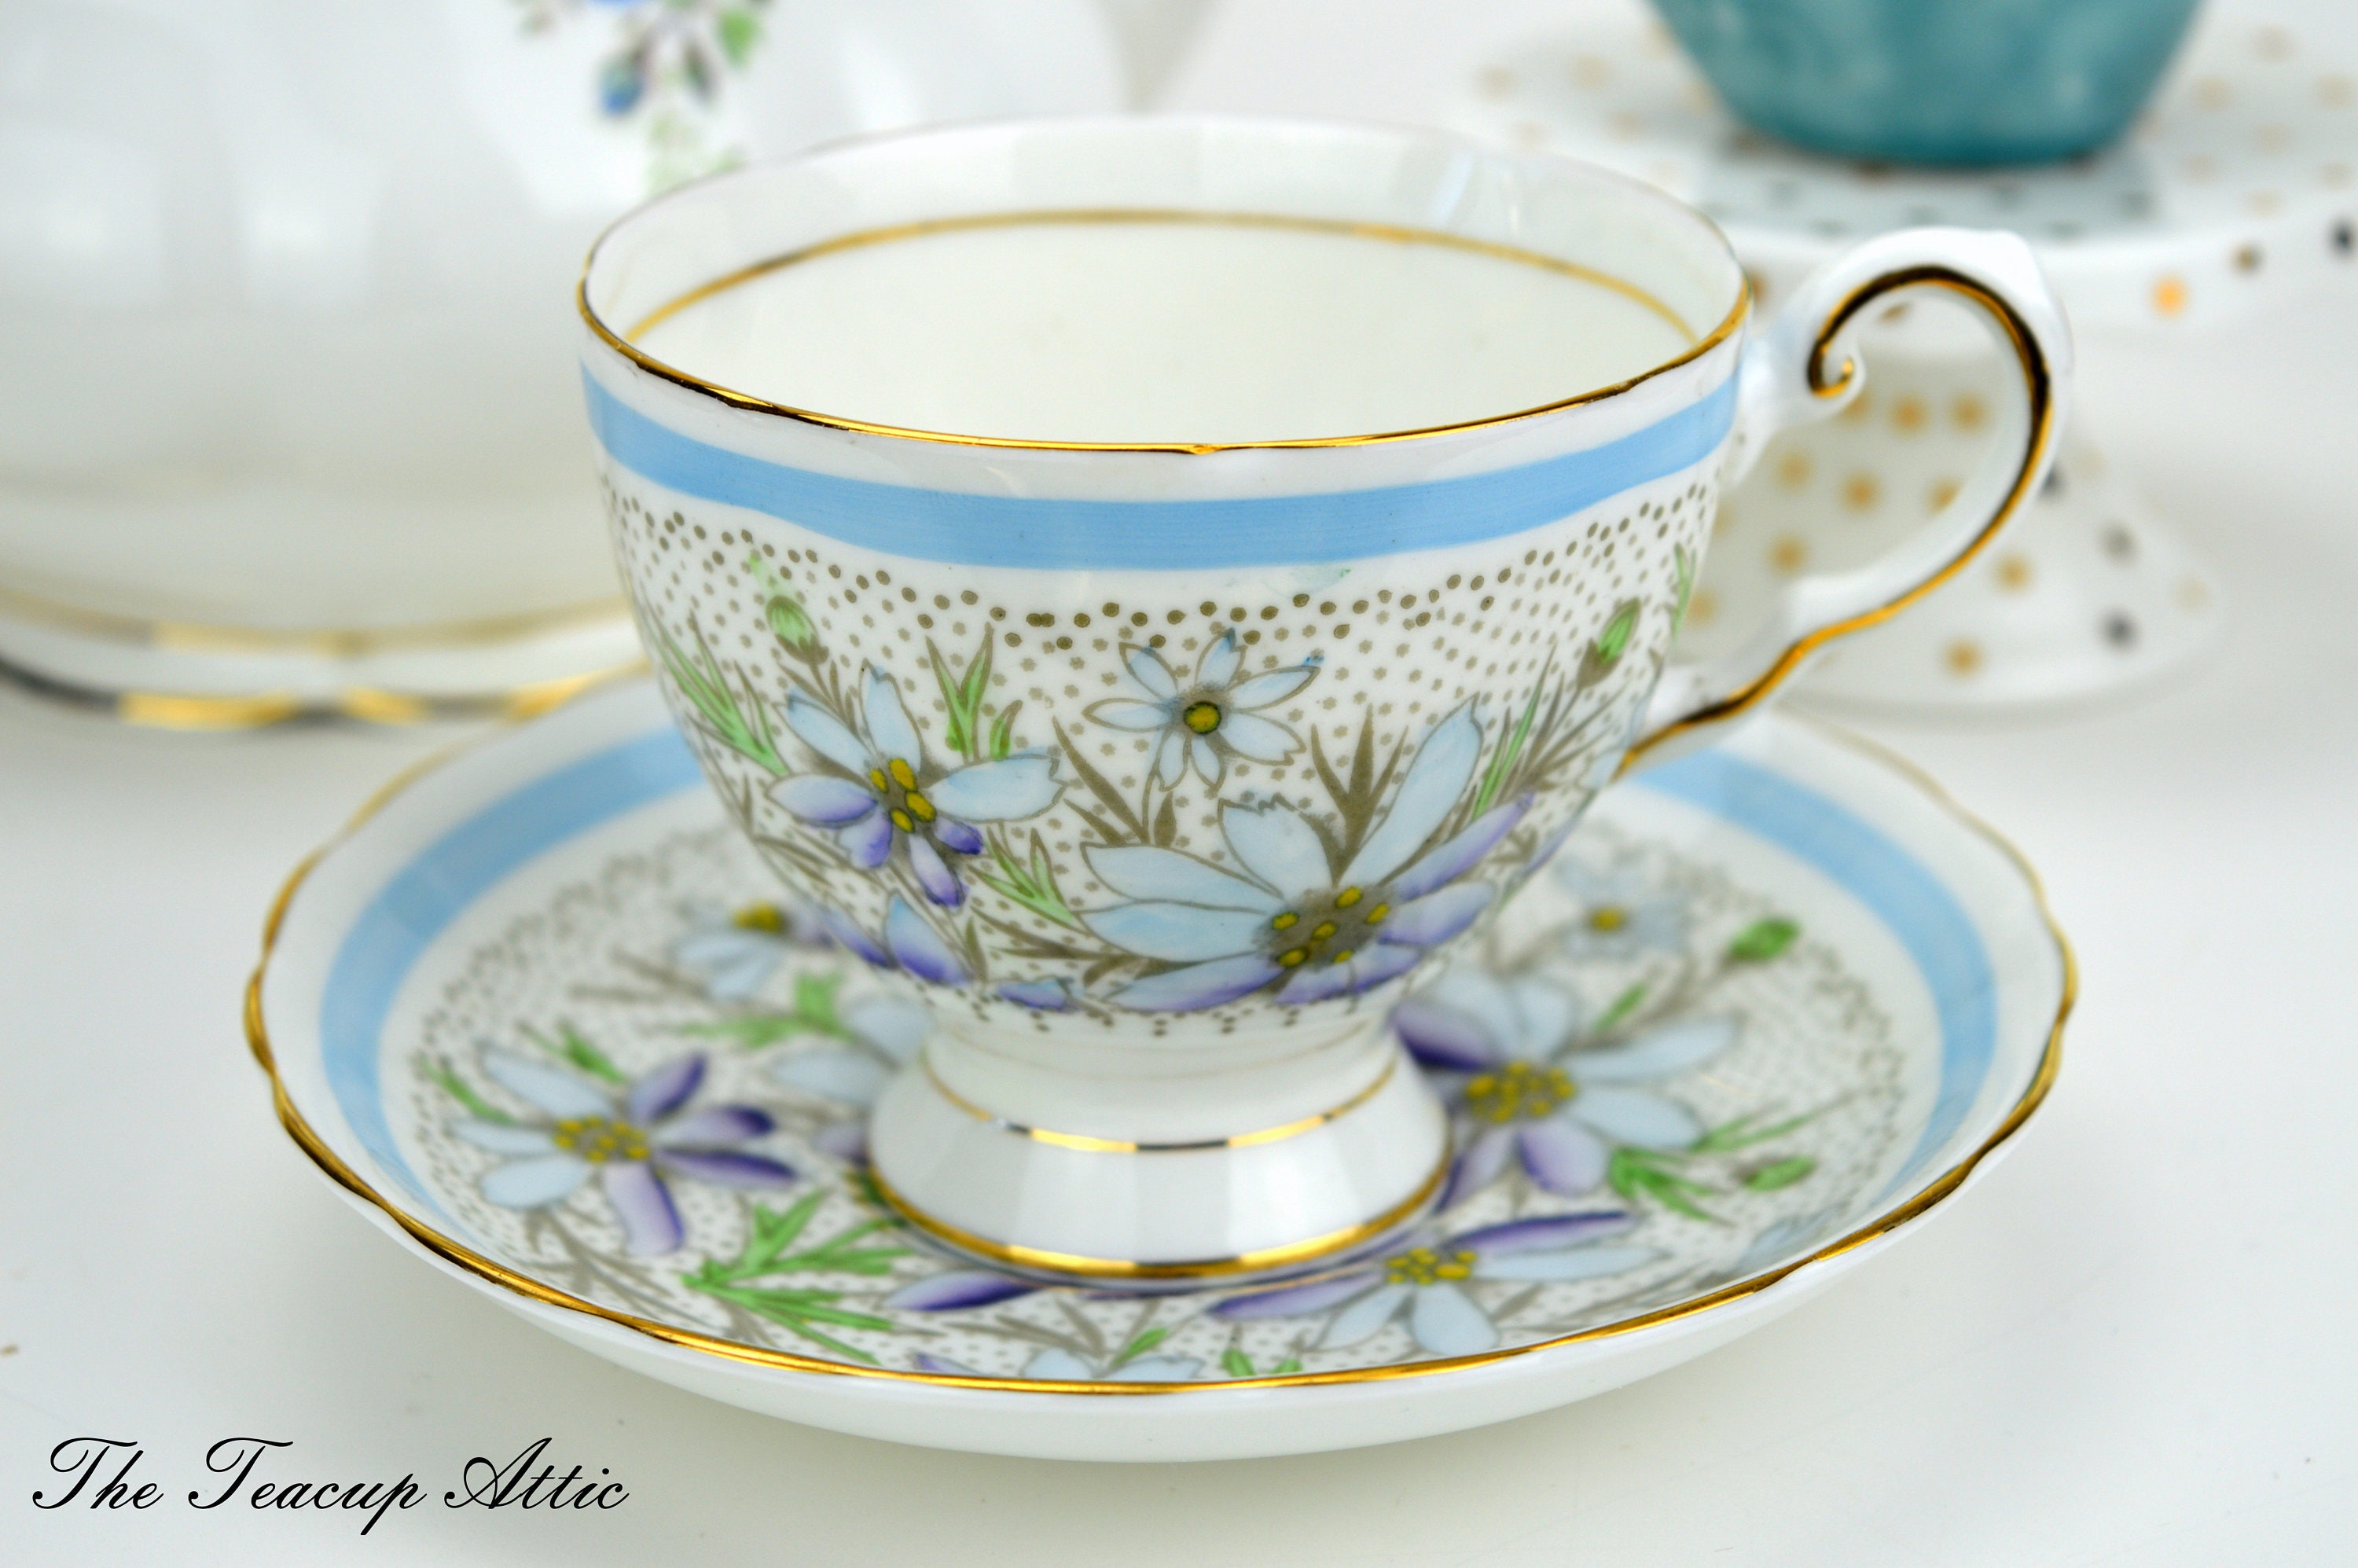 Tuscan Vintage Teacup and Saucer With Blue Flowers and Hand Painted Centers, English Bone China Tea Cup, Wedding Gift, ca. 1947